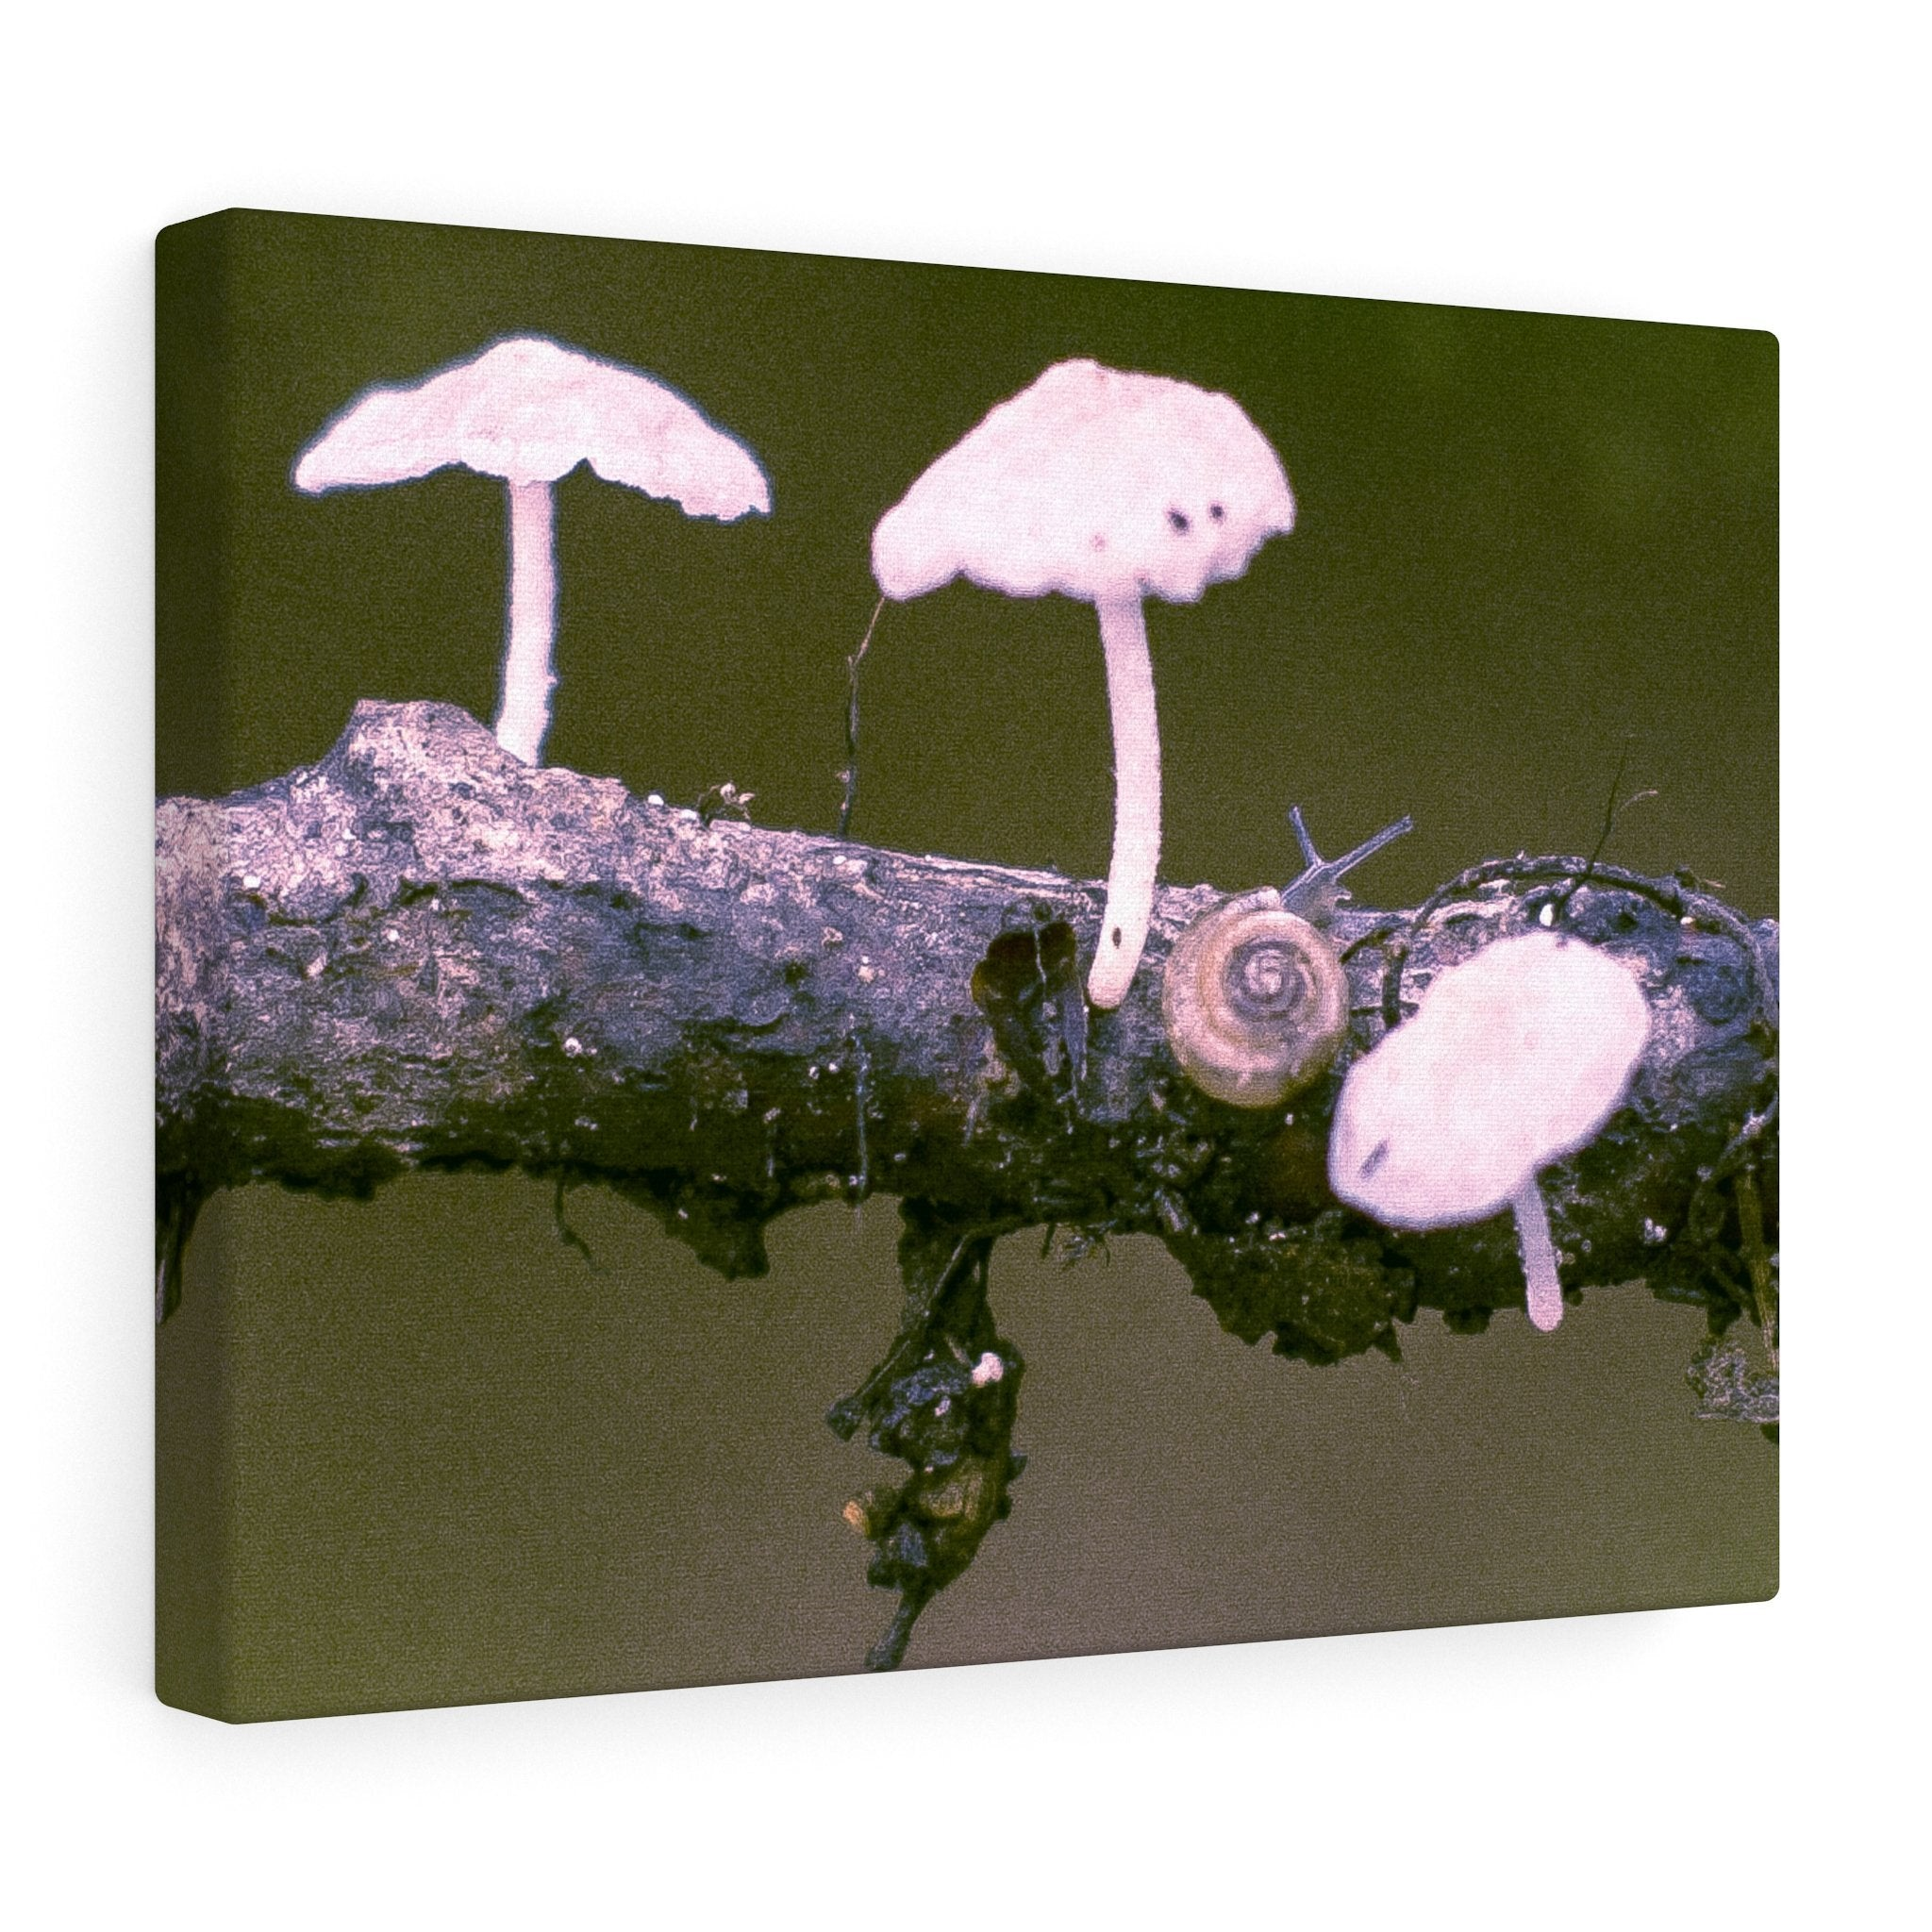 Snail on a Log Stretched canvas 16″ × 12″ / Stretched Canvas (1.5